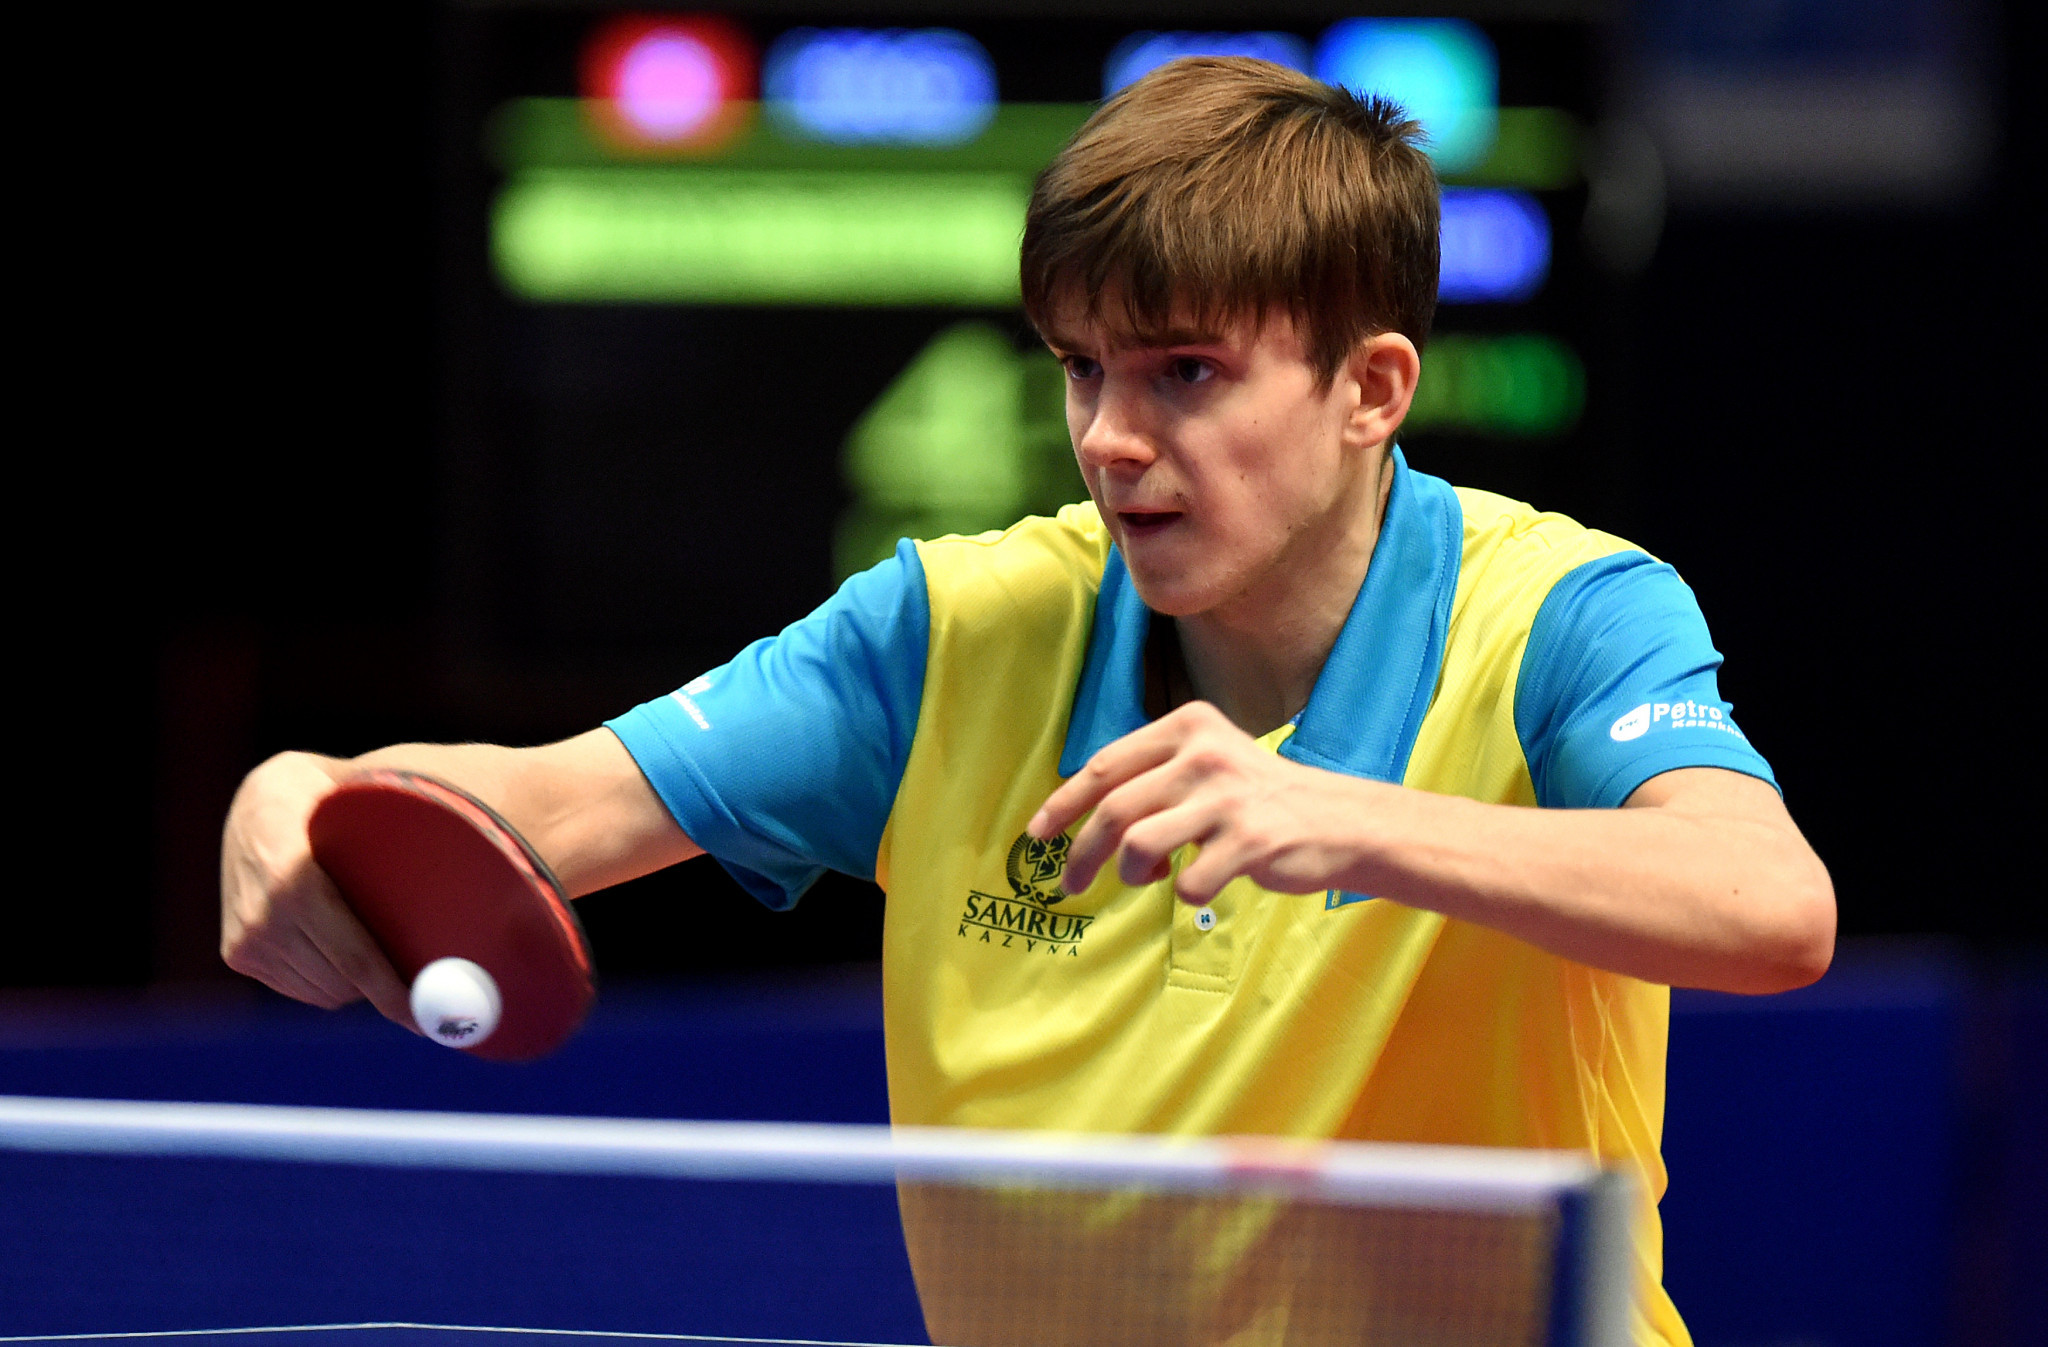 Central Asia top seed Kirill Gerassimenko of Kazakhstan won both his opening men's singles matches at the Asian Olympic Qualifying Tournament that started in Doha today ©Getty Images